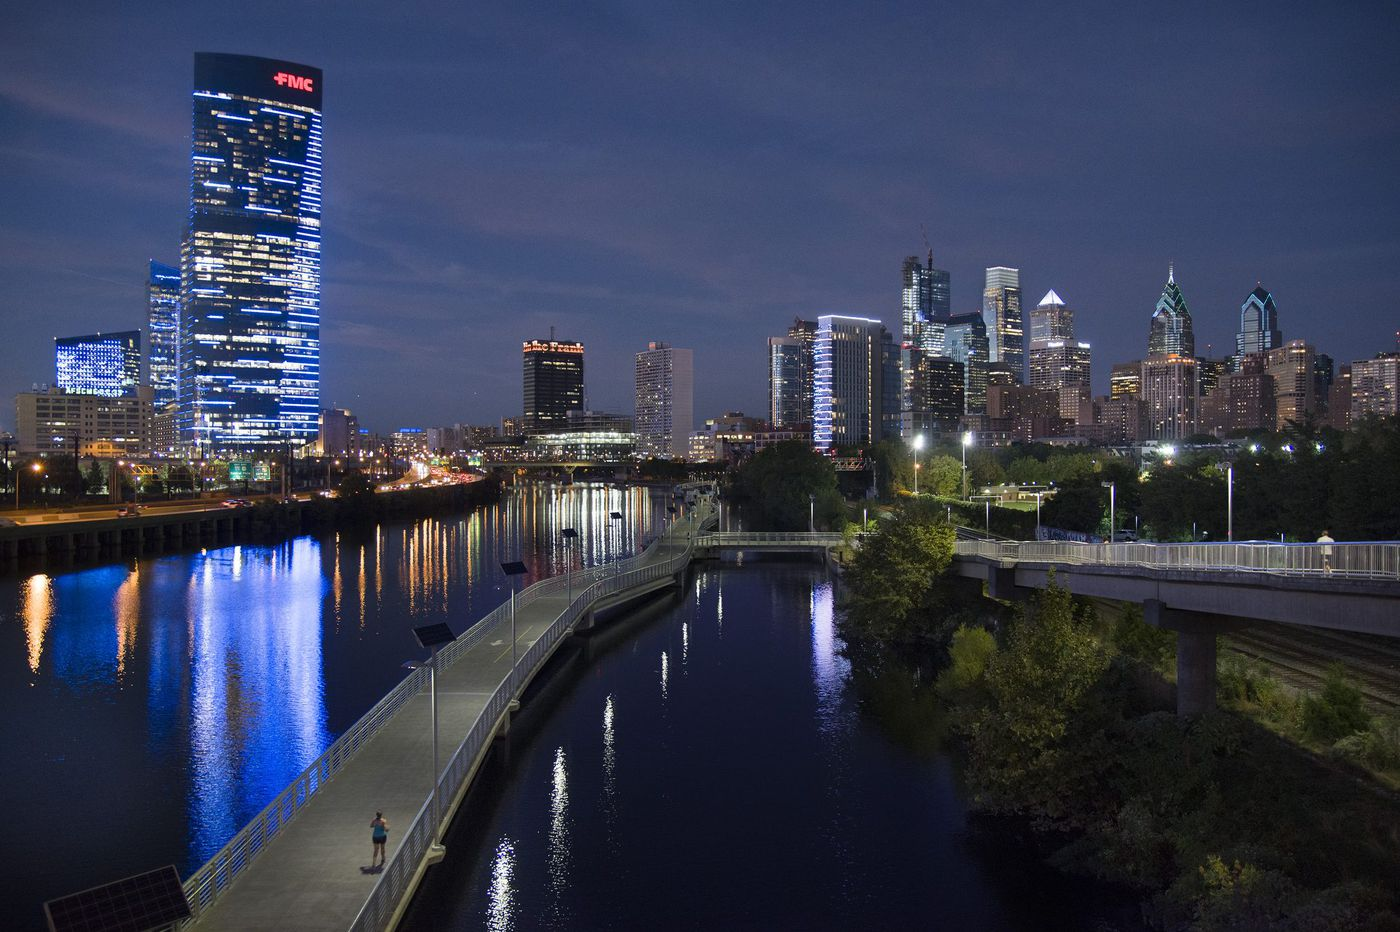 Now Philly is GQ's city of the year — thanks to those working to fix it | Mike Newall